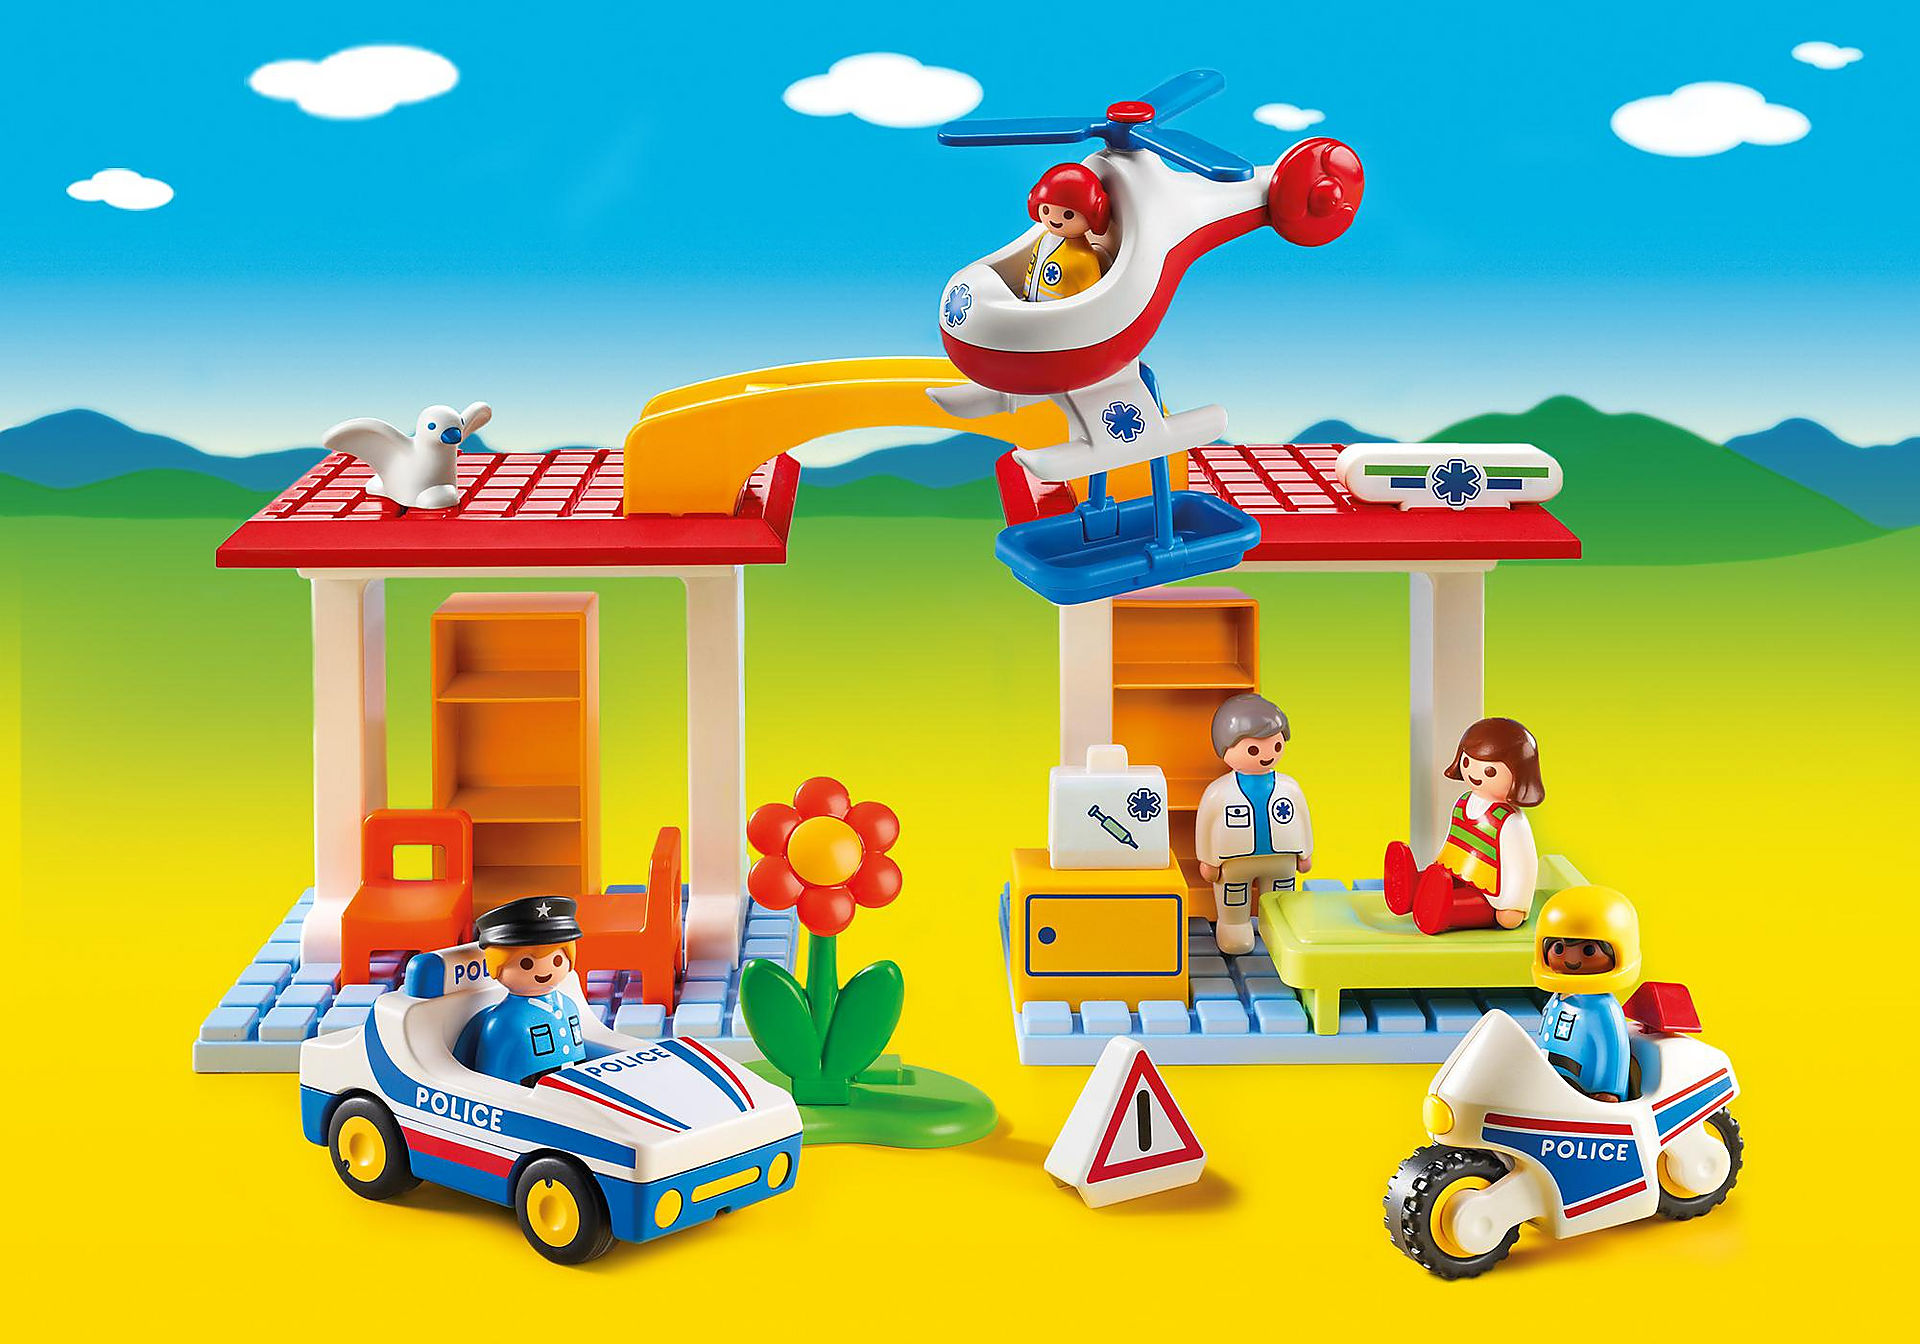 http://media.playmobil.com/i/playmobil/5046_product_detail/Polizei und Ambulanz 1.2.3